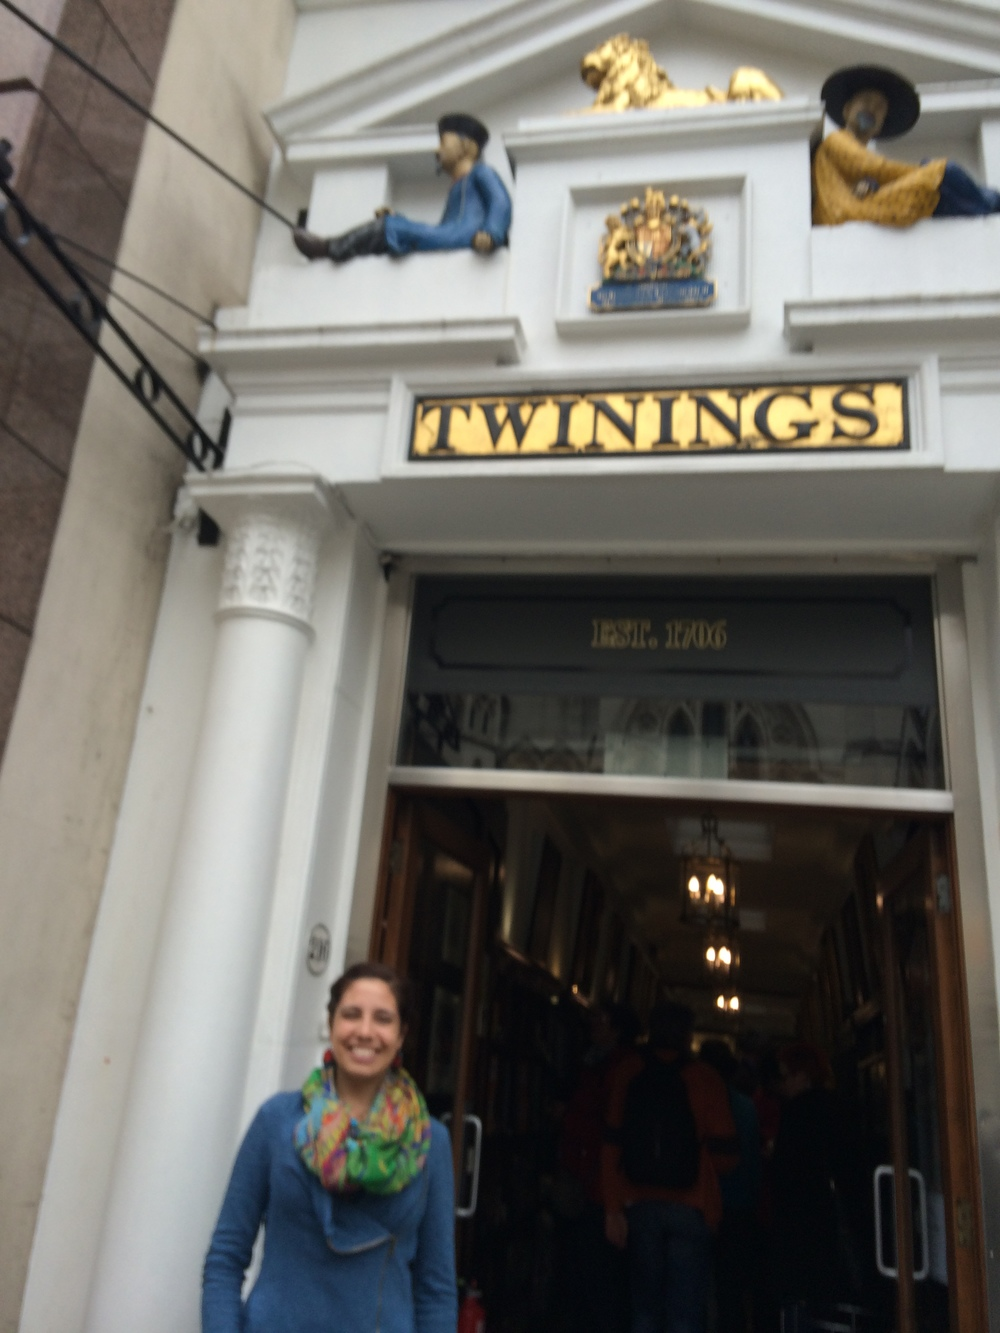 Outside Twinings!